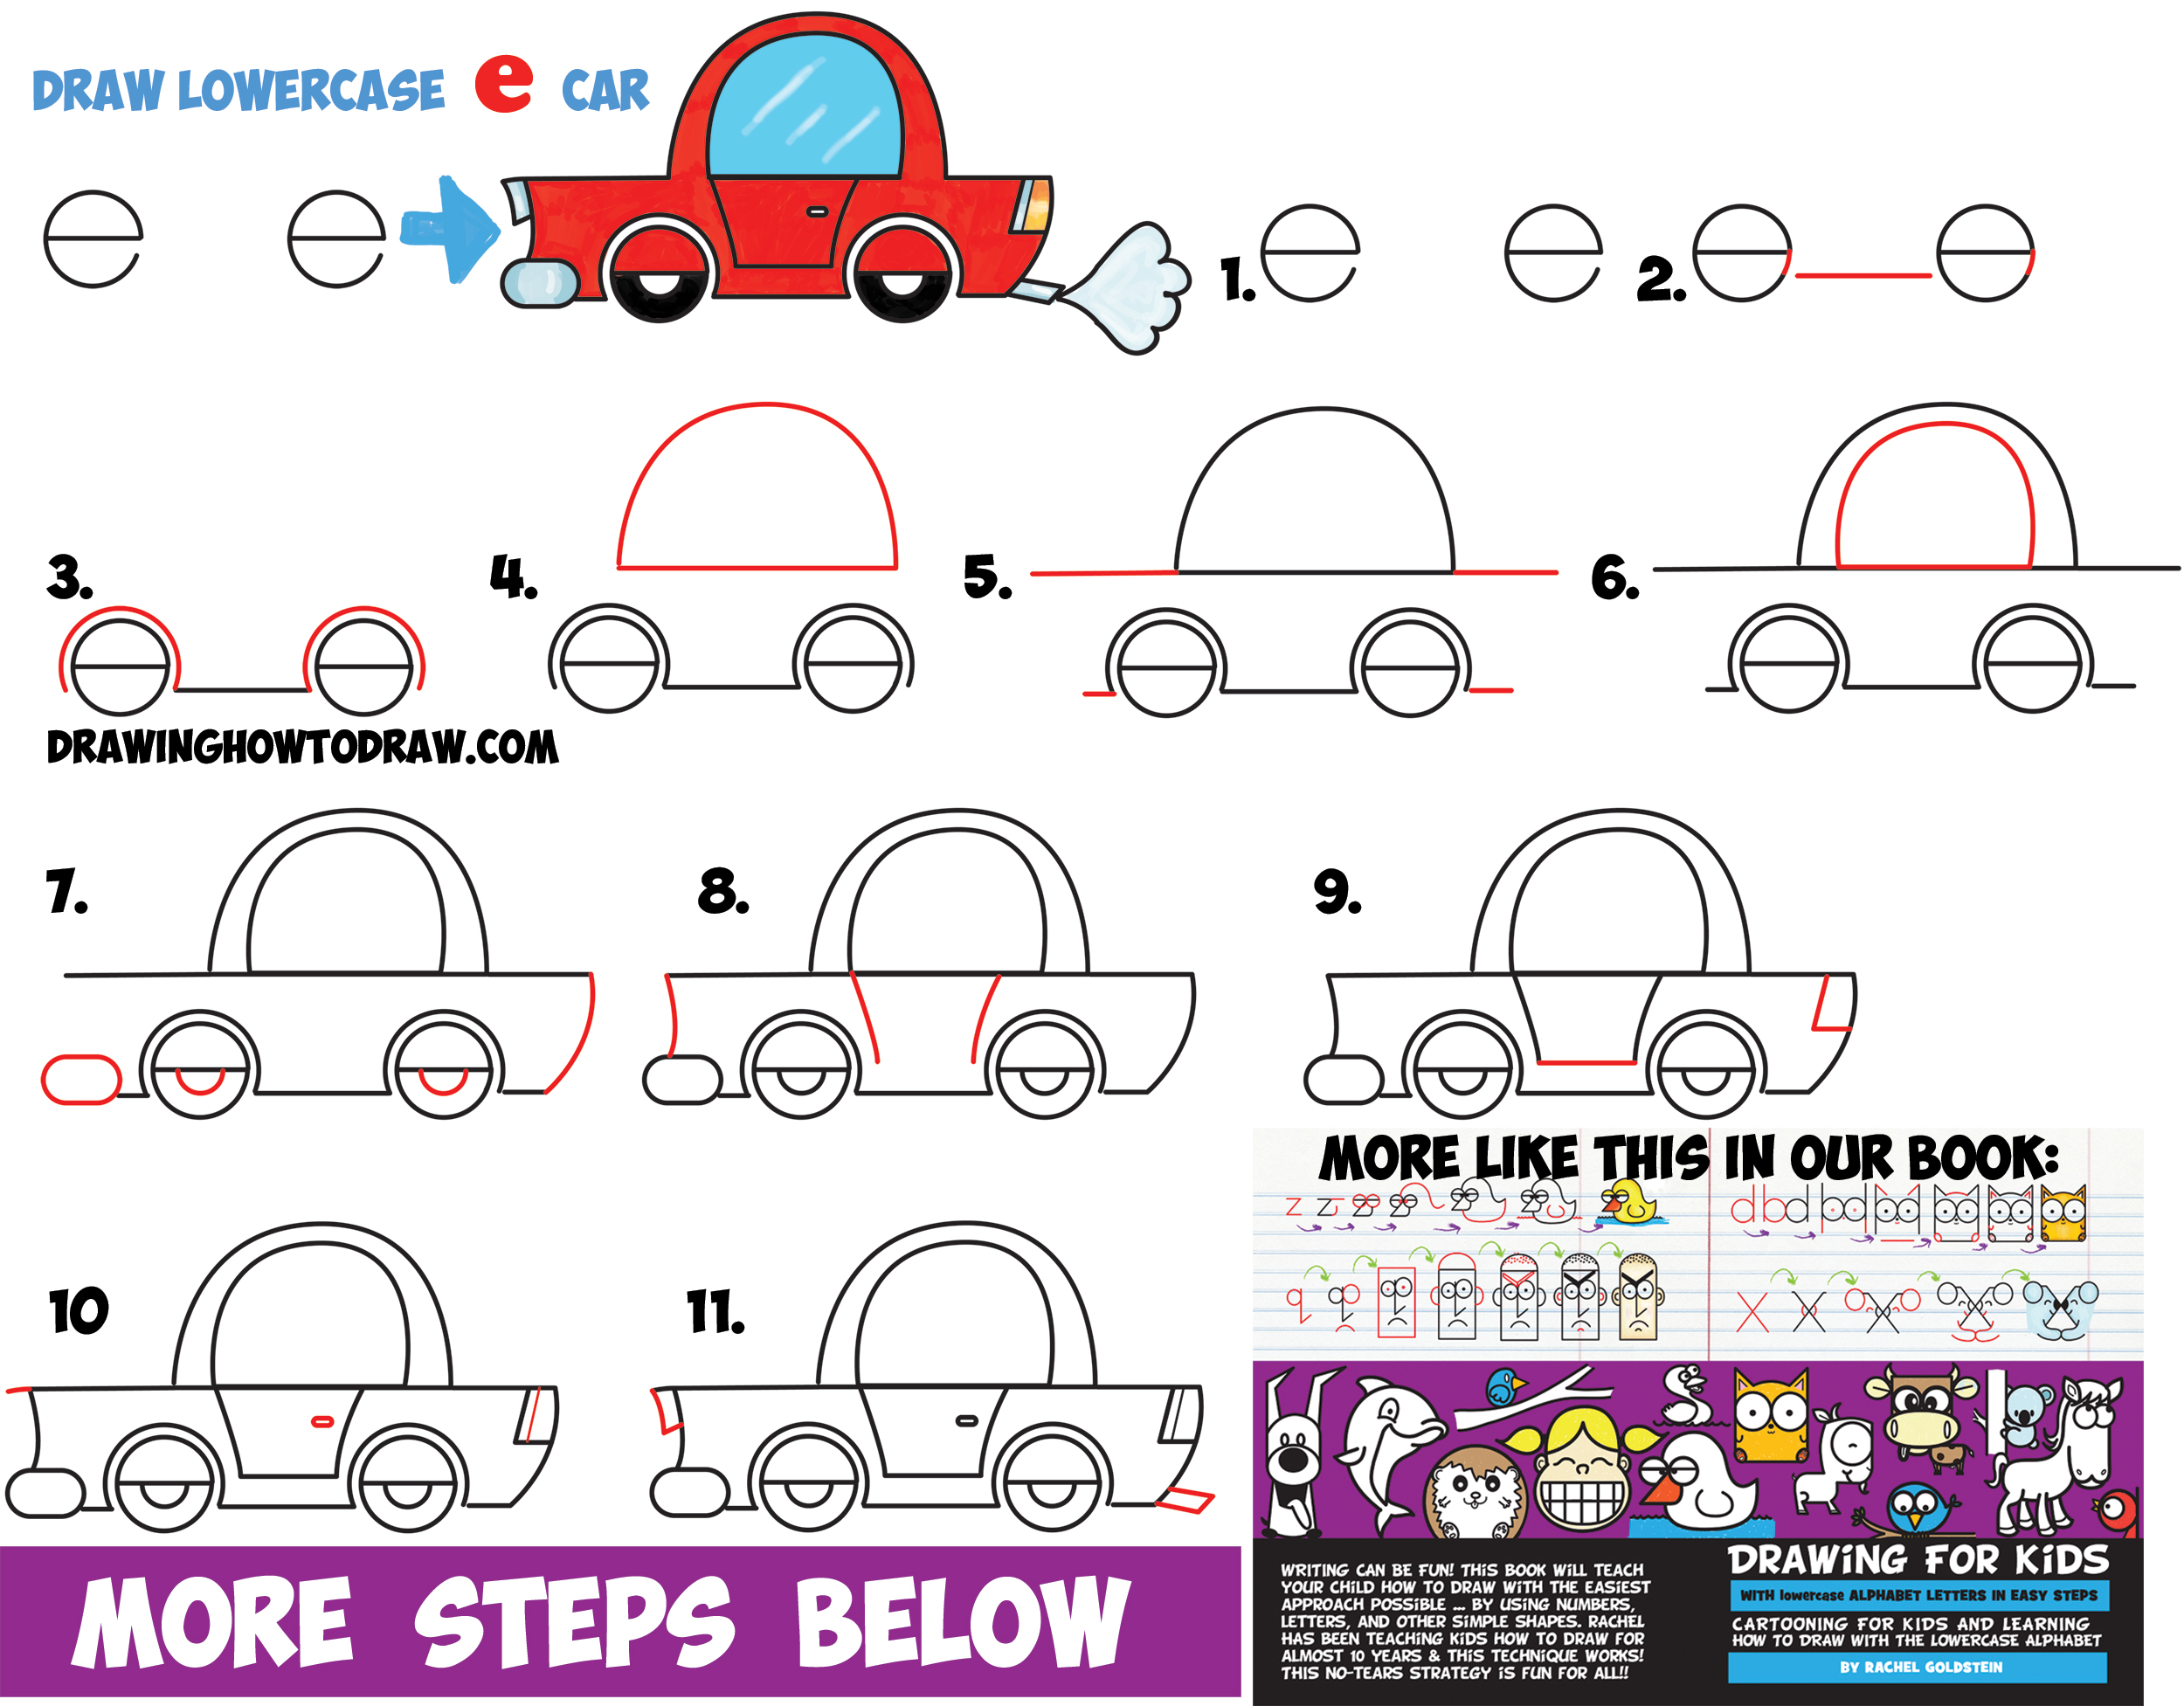 How to Draw a Cartoon Car from Lowercase Letter e Shapes - Easy Drawing Tutorial for